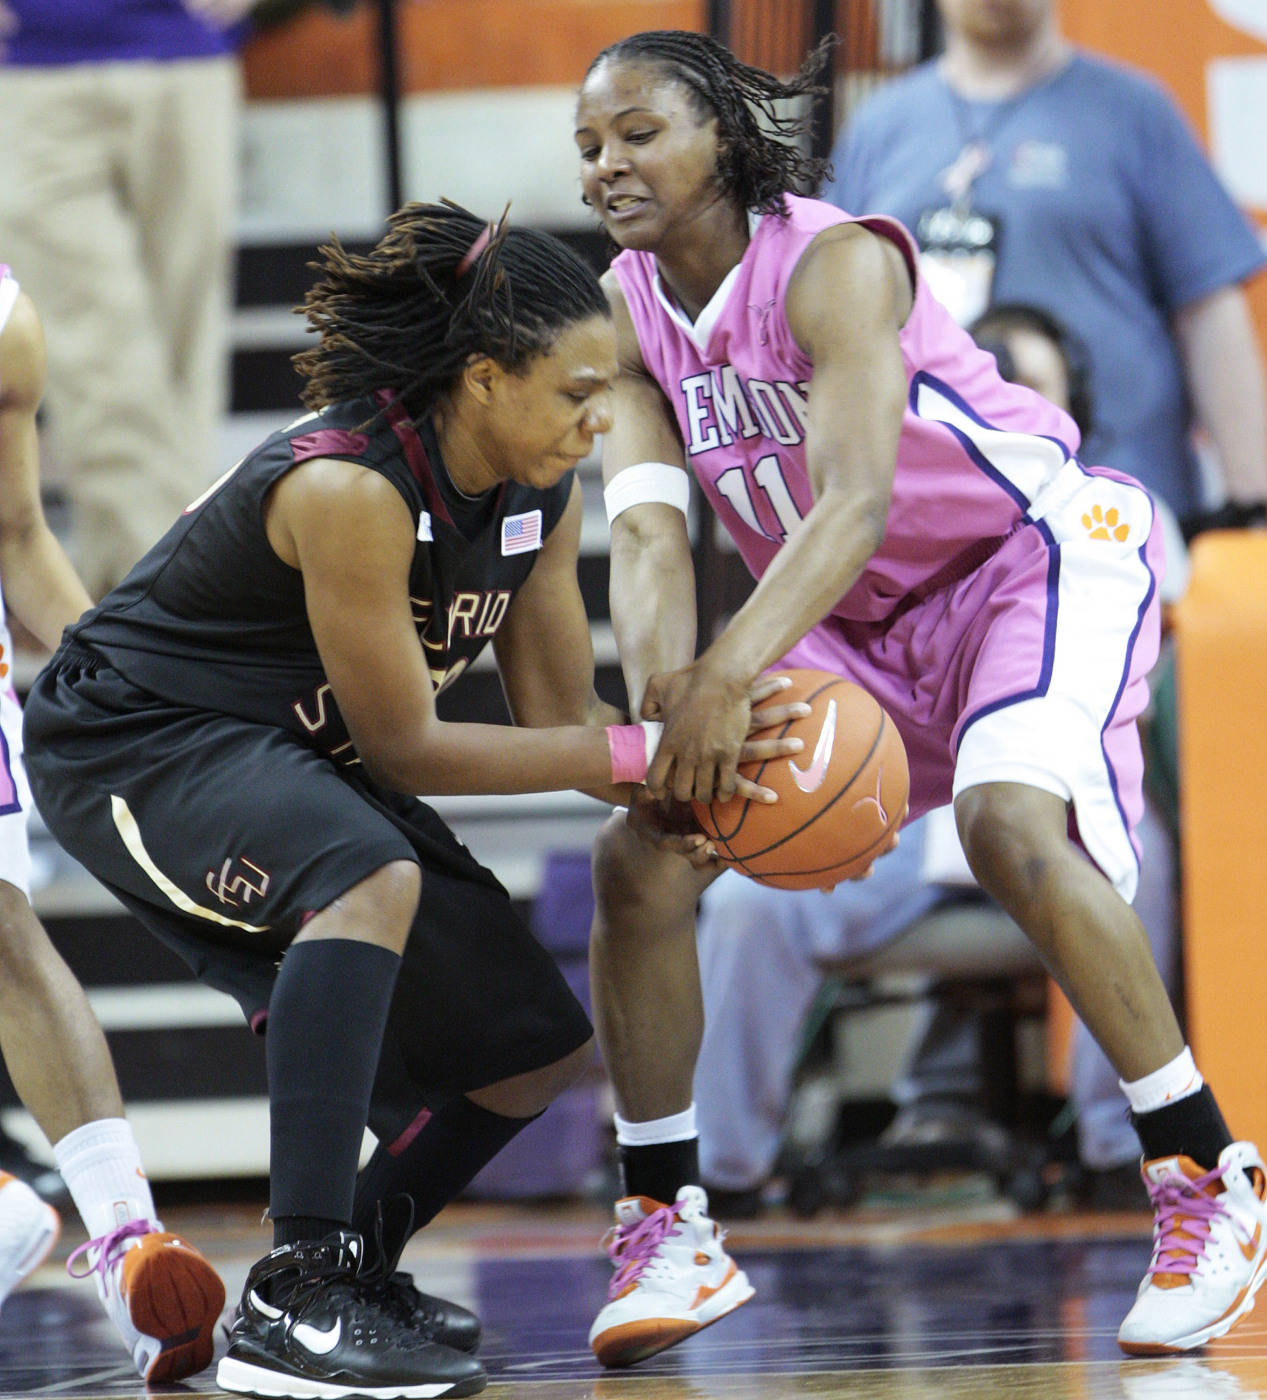 Clemson's Lele Hardy battles for a loose ball against Florida State's Tanae Davis-Cain during the second half in Clemson, S.C., Thursday, Feb. 19, 2009. (AP Photo/Patrick Collard)